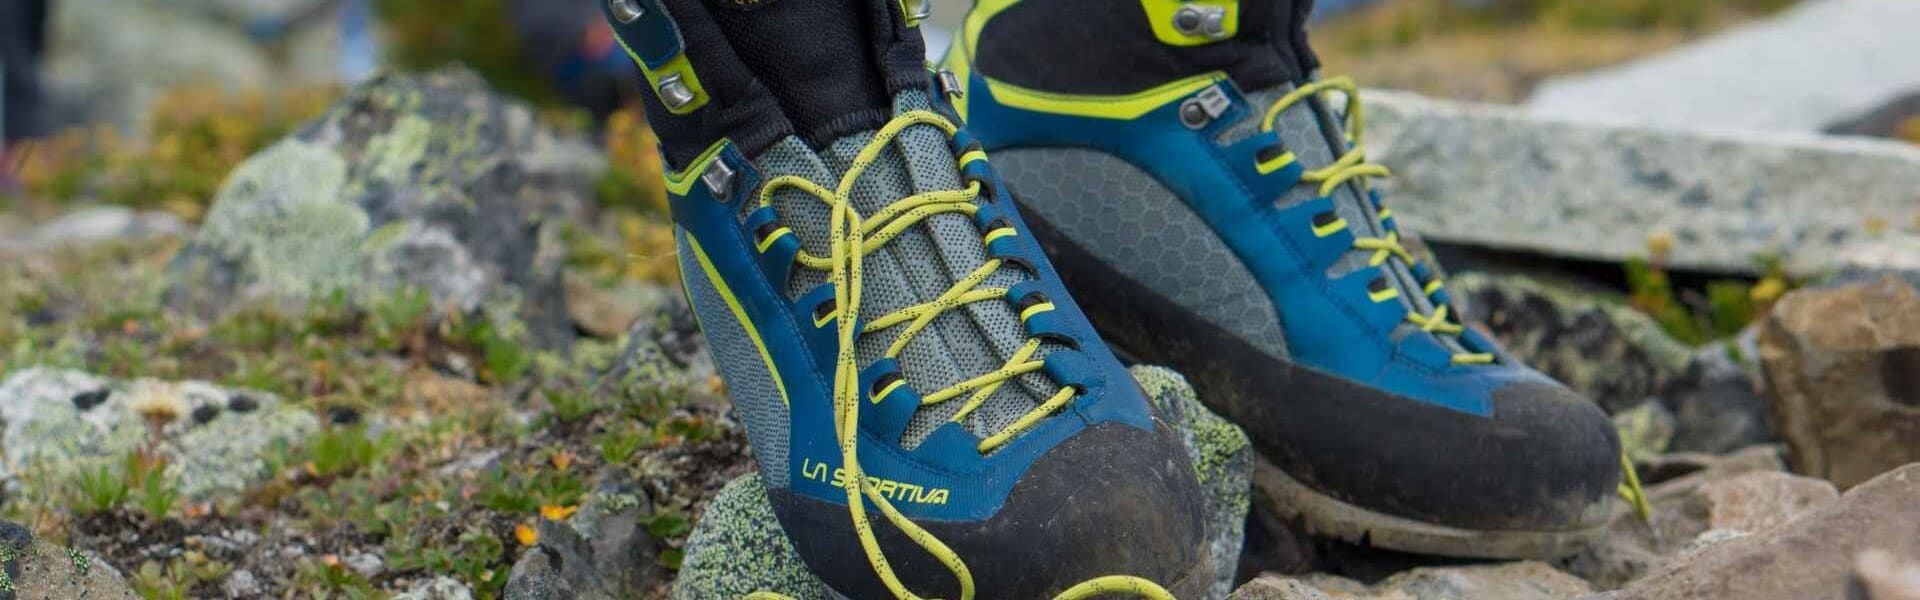 Best Mountaineering Boots – Top Rated and Reviewed